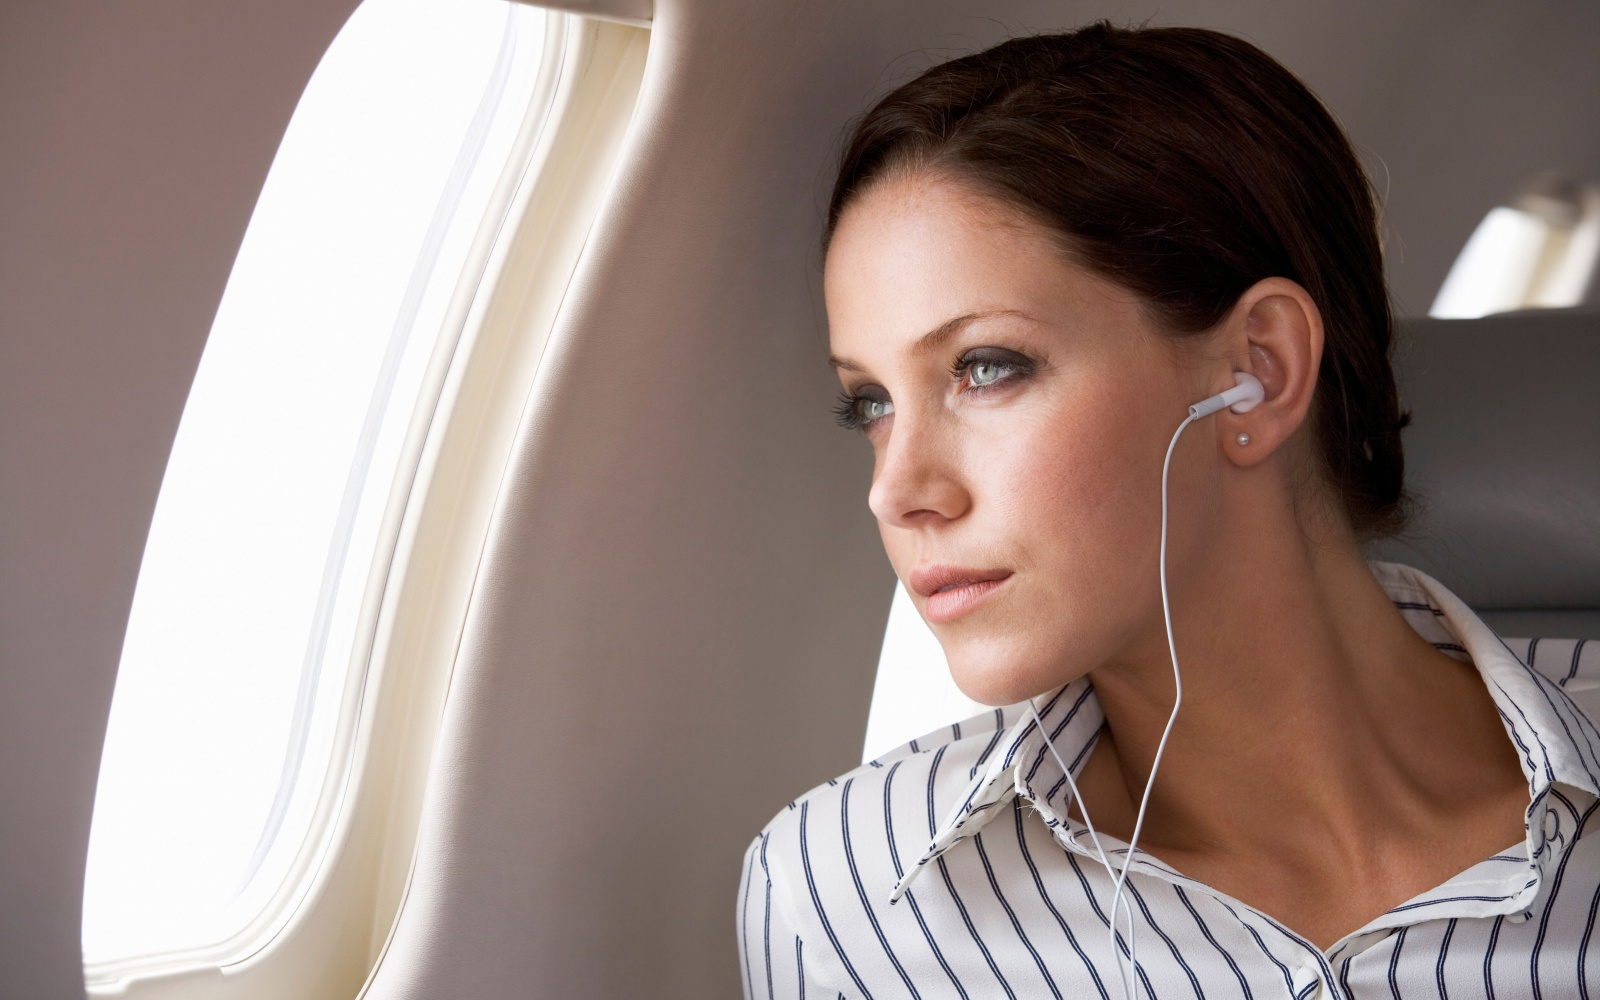 American Airlines indie music selection